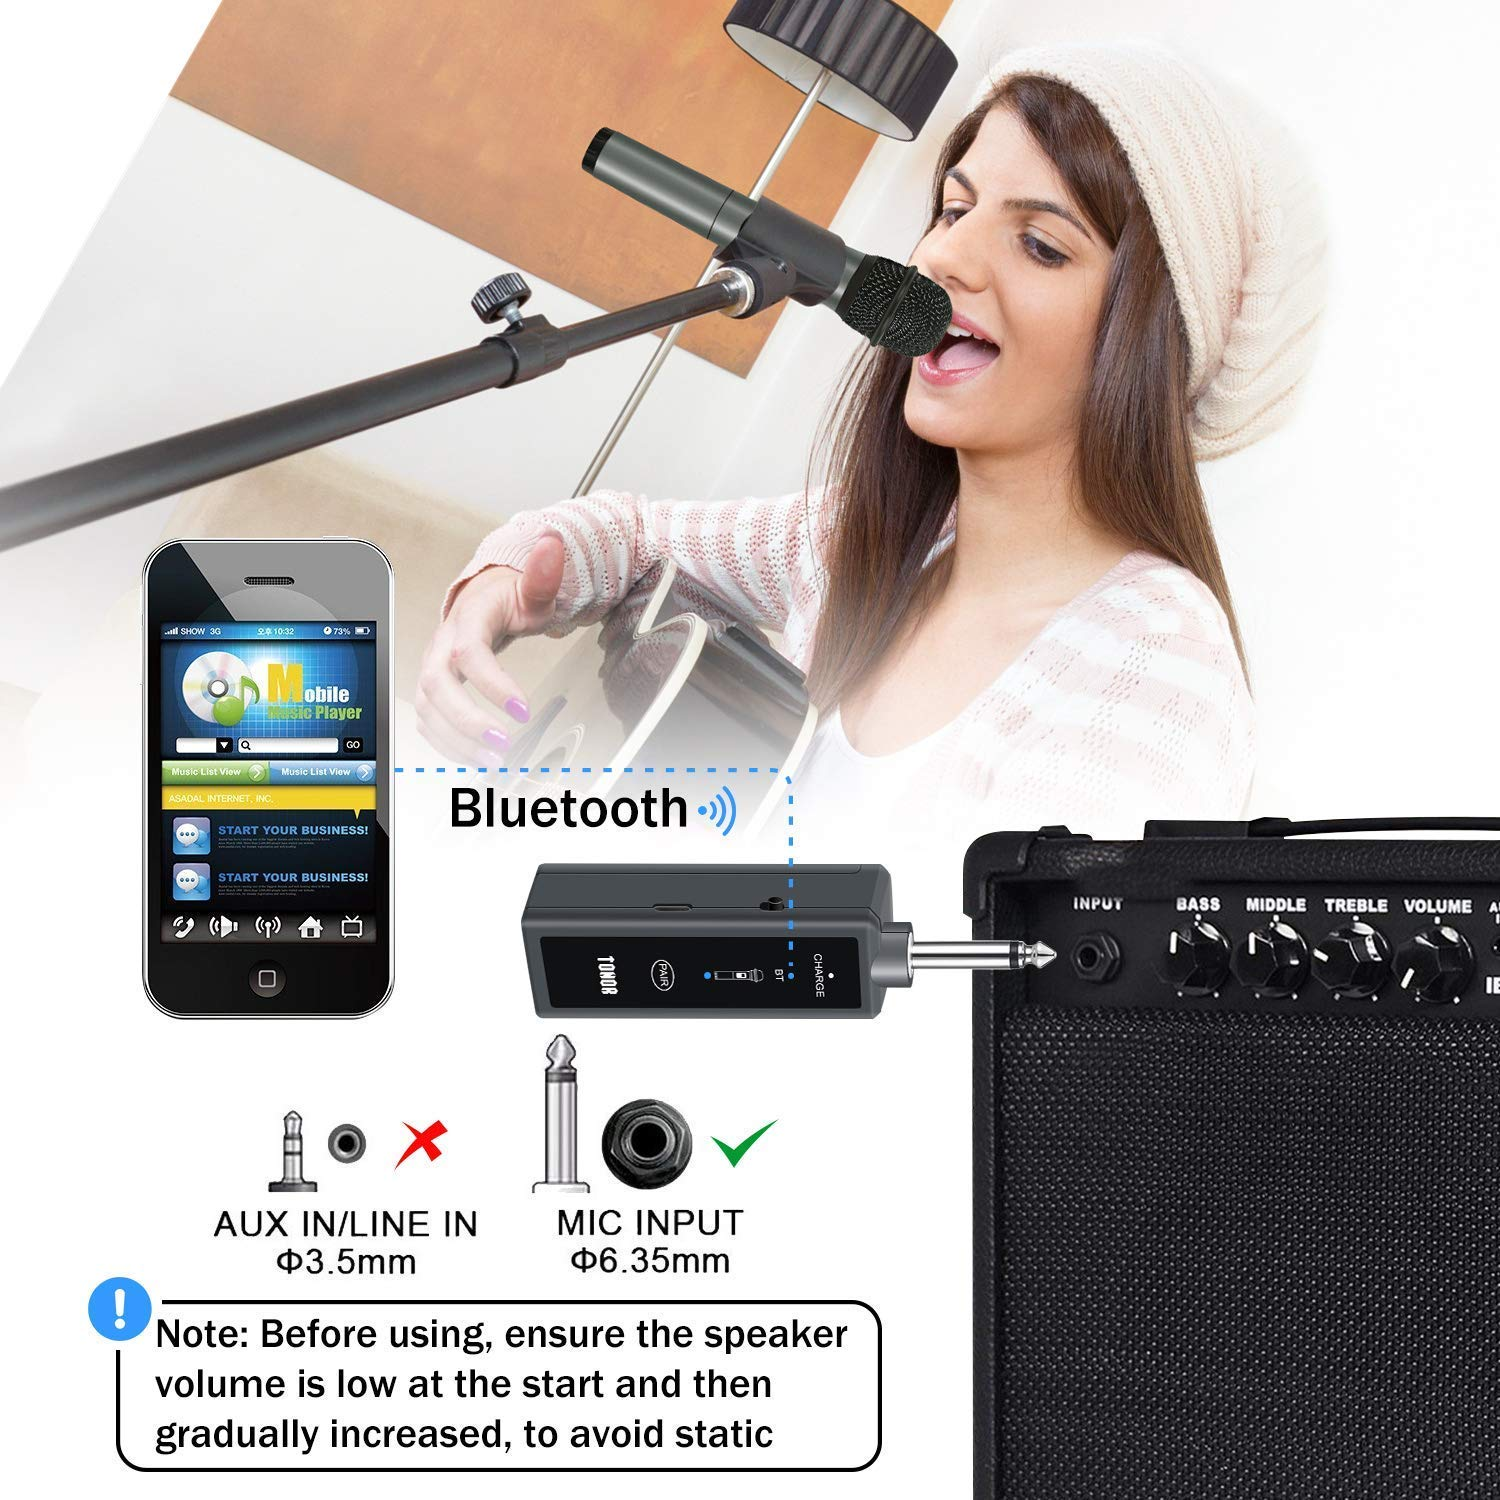 tonor uhf wireless microphone handheld mic with bluetooth receiver 1 4 output for conference. Black Bedroom Furniture Sets. Home Design Ideas